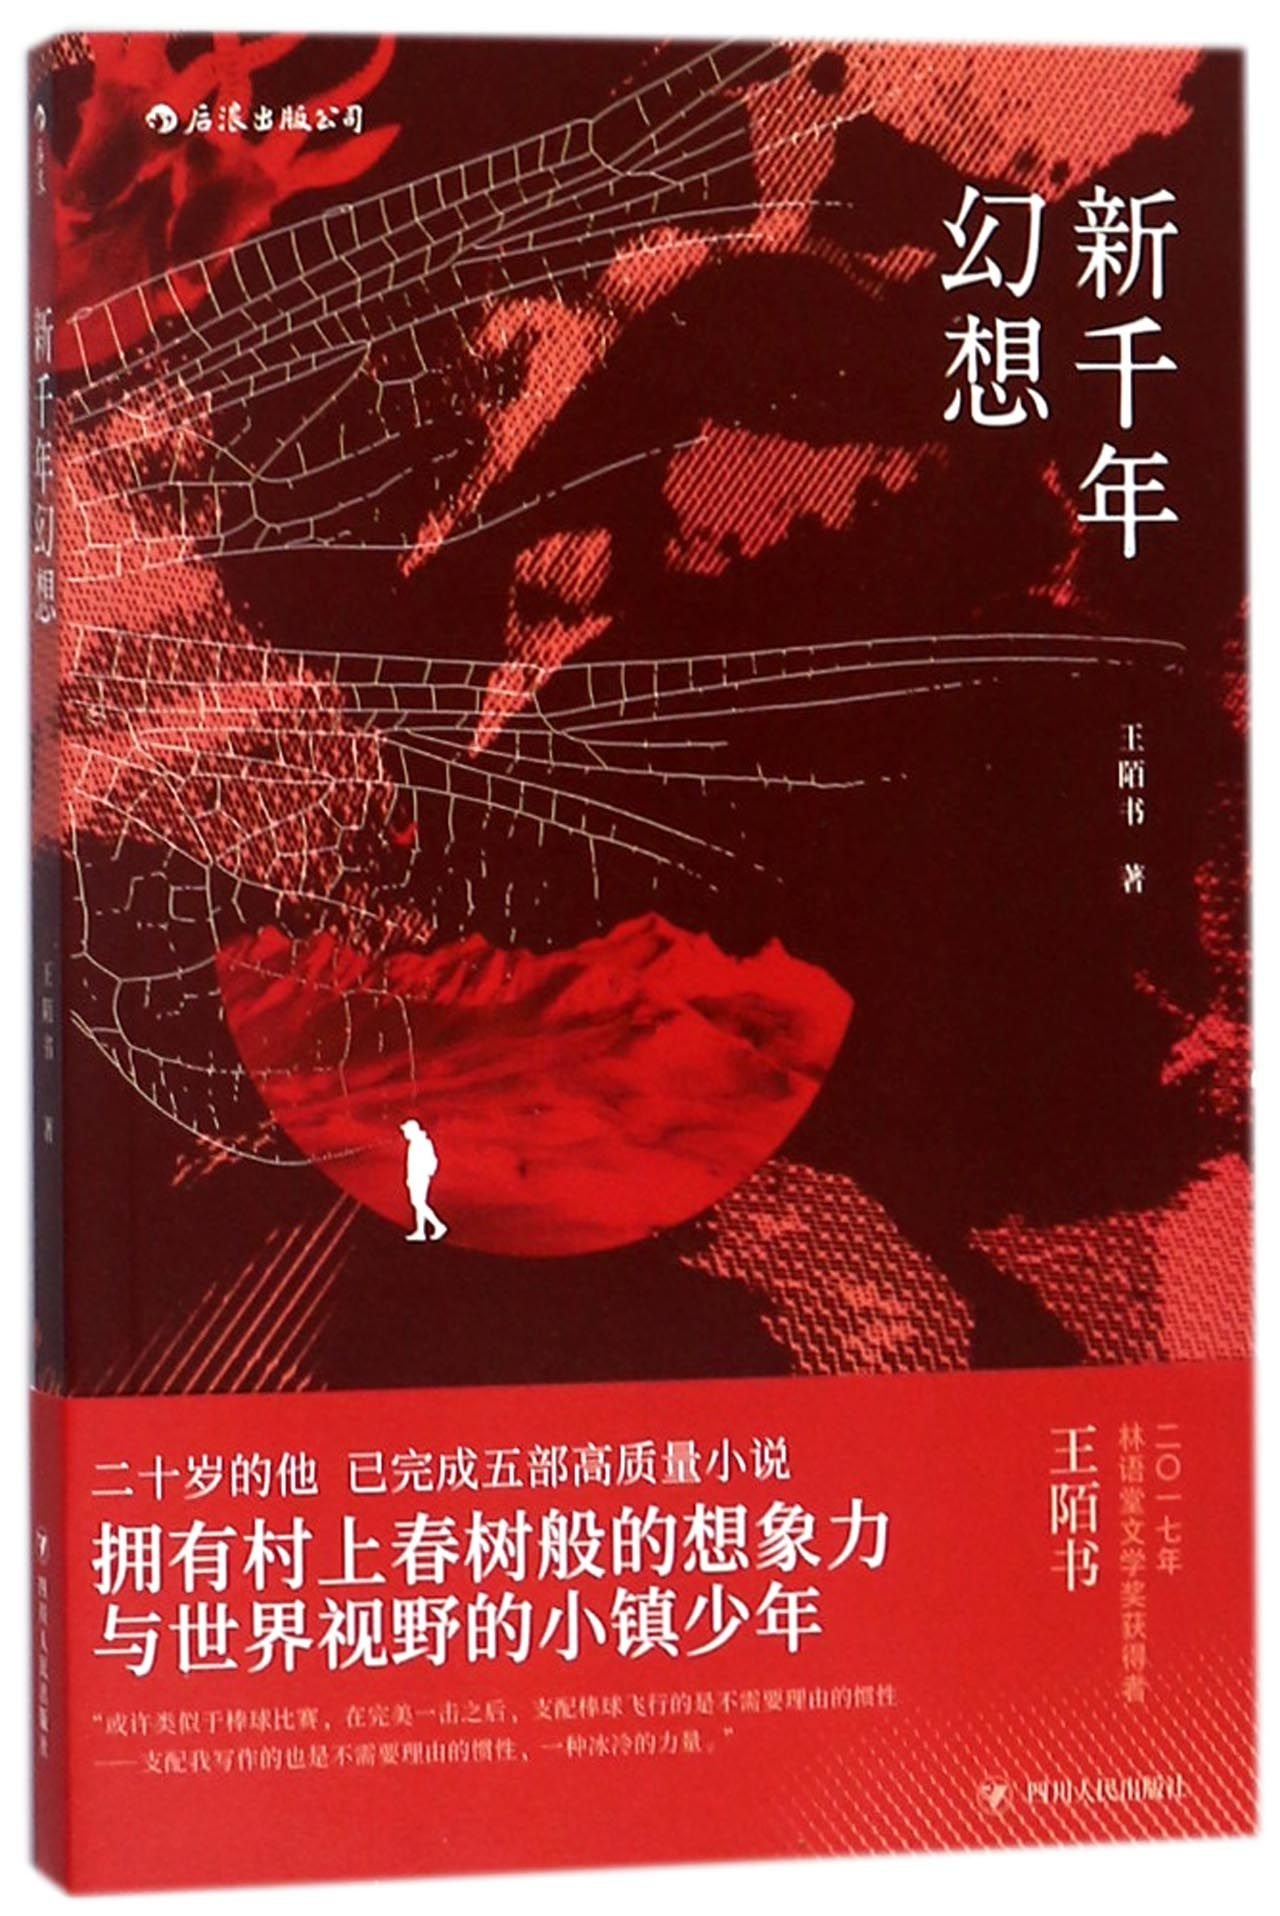 Download Fantasy in the New Millennium (Chinese Edition) Text fb2 ebook